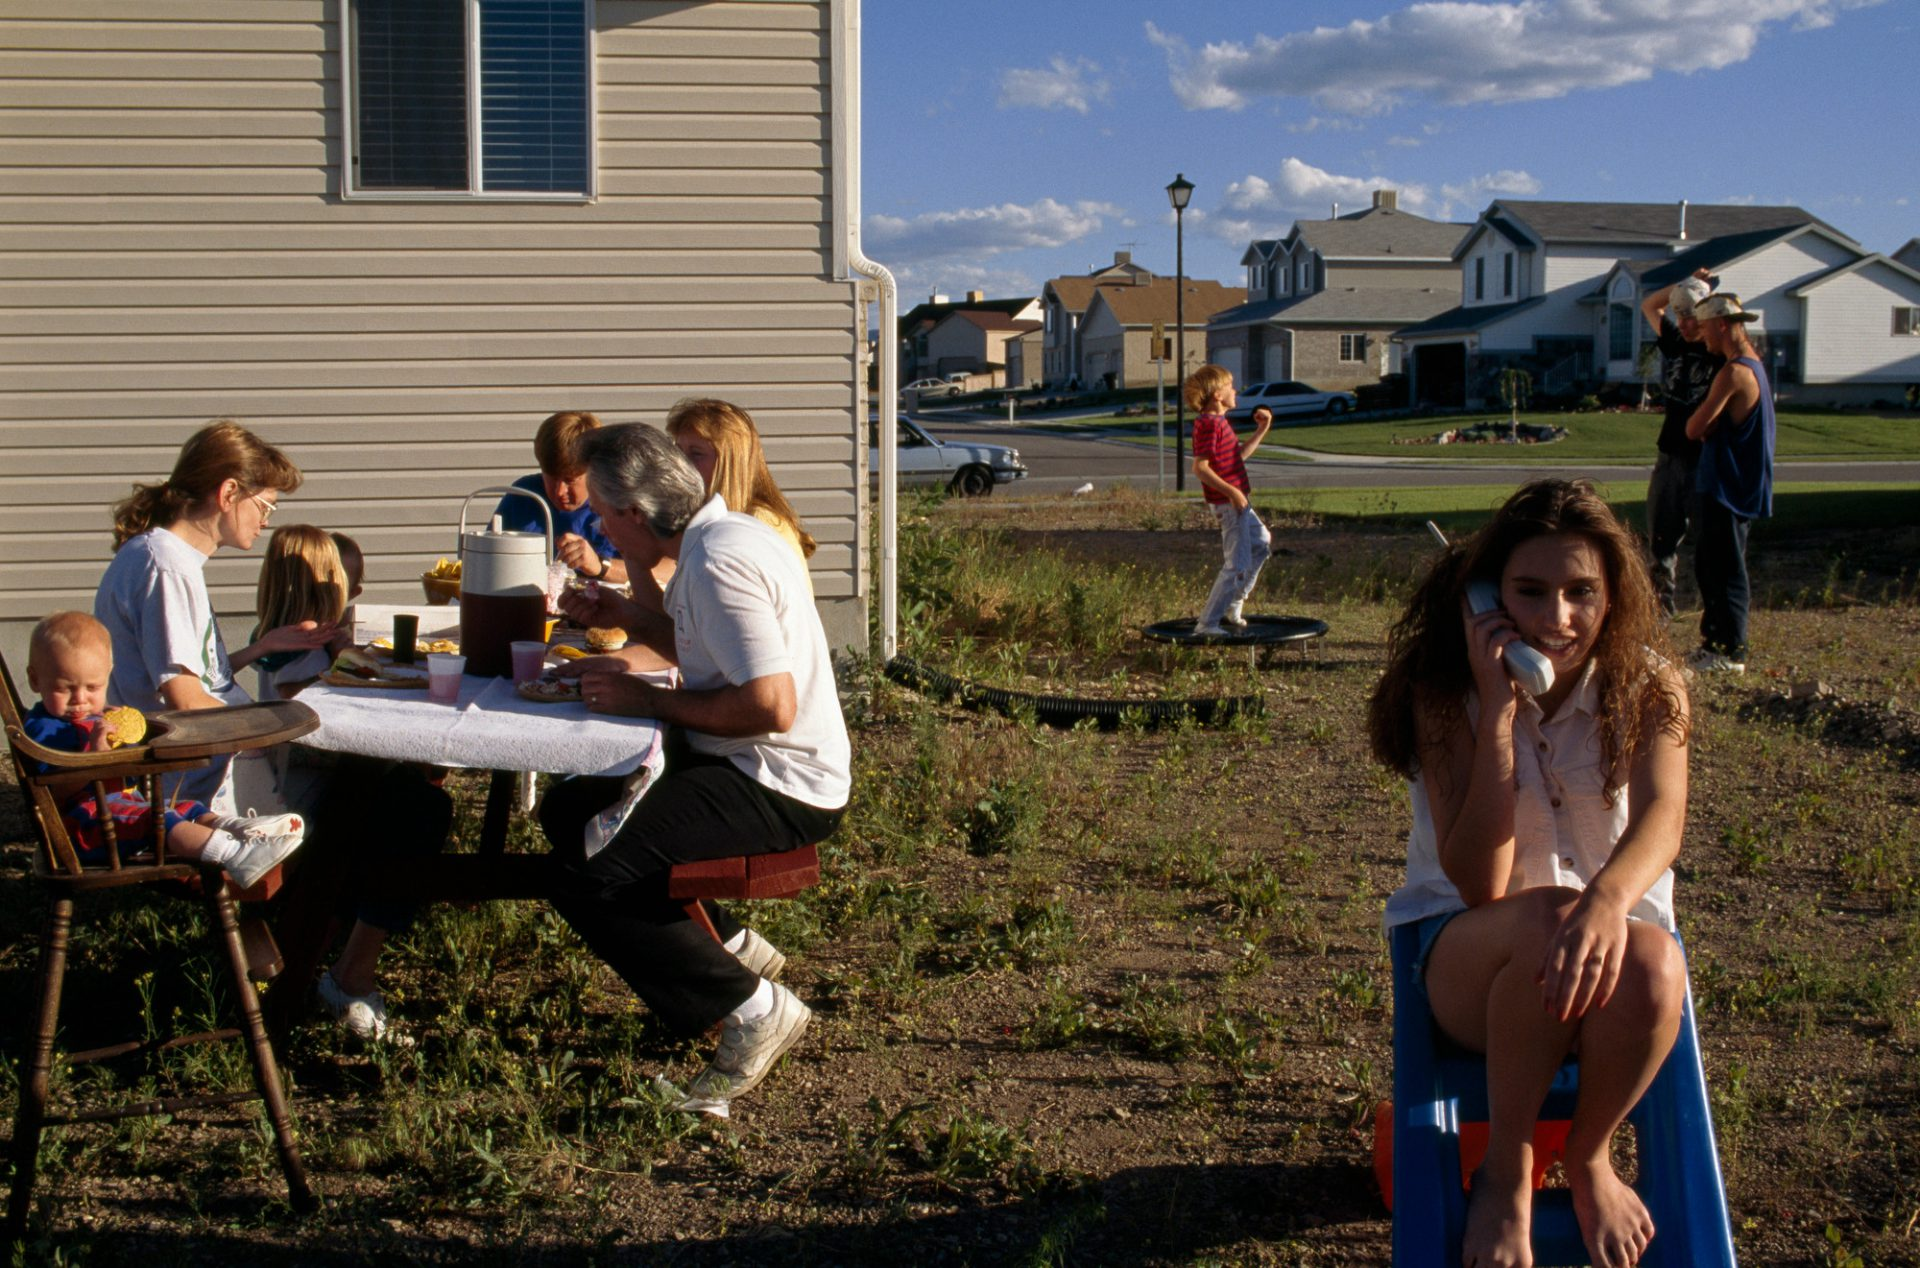 Photo: A family picnic outside their suburban house in West Jordan, a suburb of Salt Lake City, Utah.